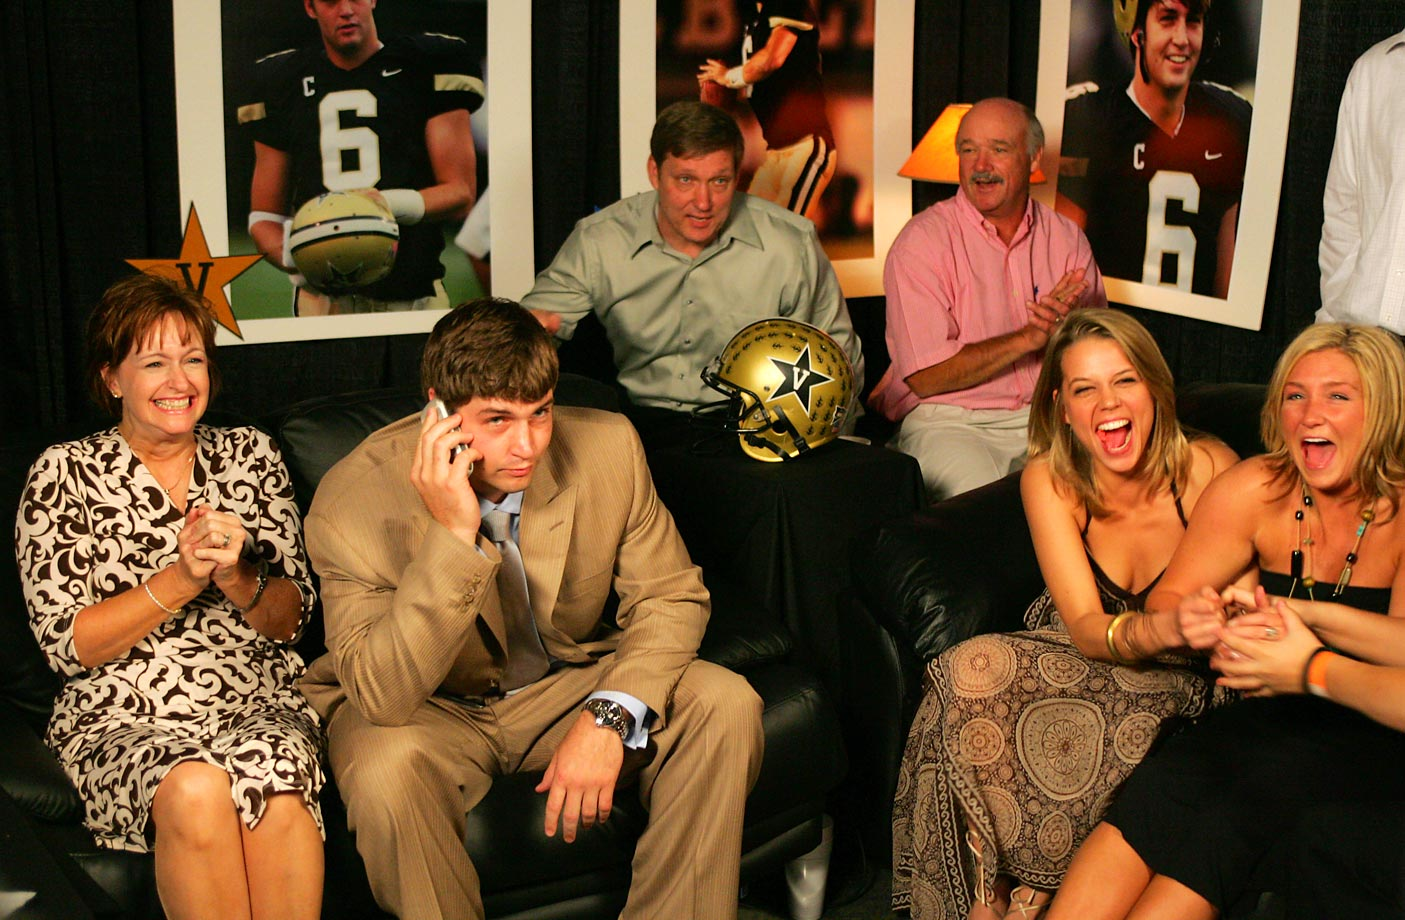 Vanderbilt University quarterback Jay Cutler and his family get the news that he was taken 11th by the Denver Broncos in the 2006 draft. Cutler was at a restaurant celebrating his birthday on the same day.